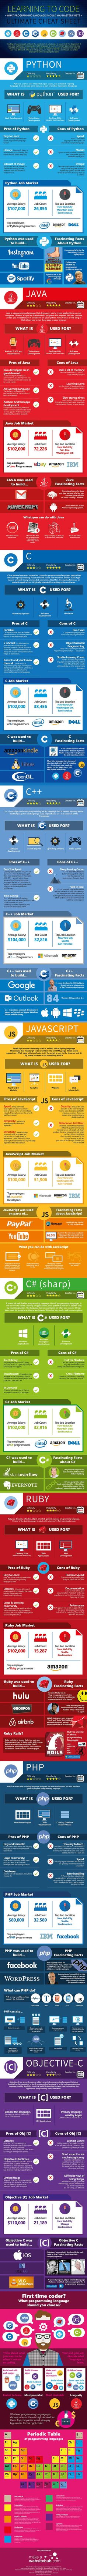 Should You Learn Python, C, or Ruby to Be a Top Coder? (Infographic) | http://Inc.com